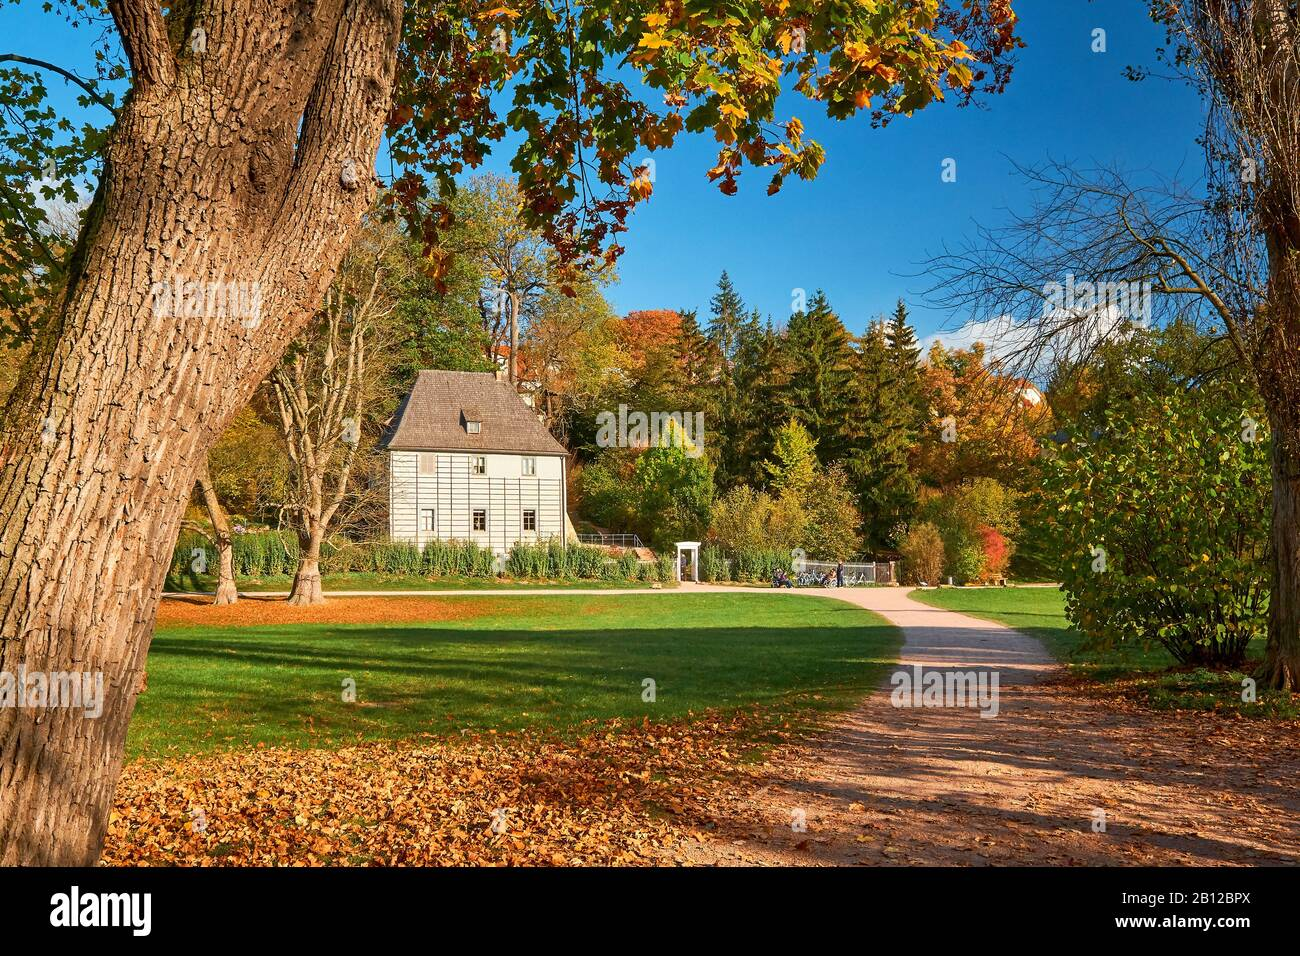 Goethe garden house in the park at the Ilm, Weimar, Thuringia, Germany Stock Photo